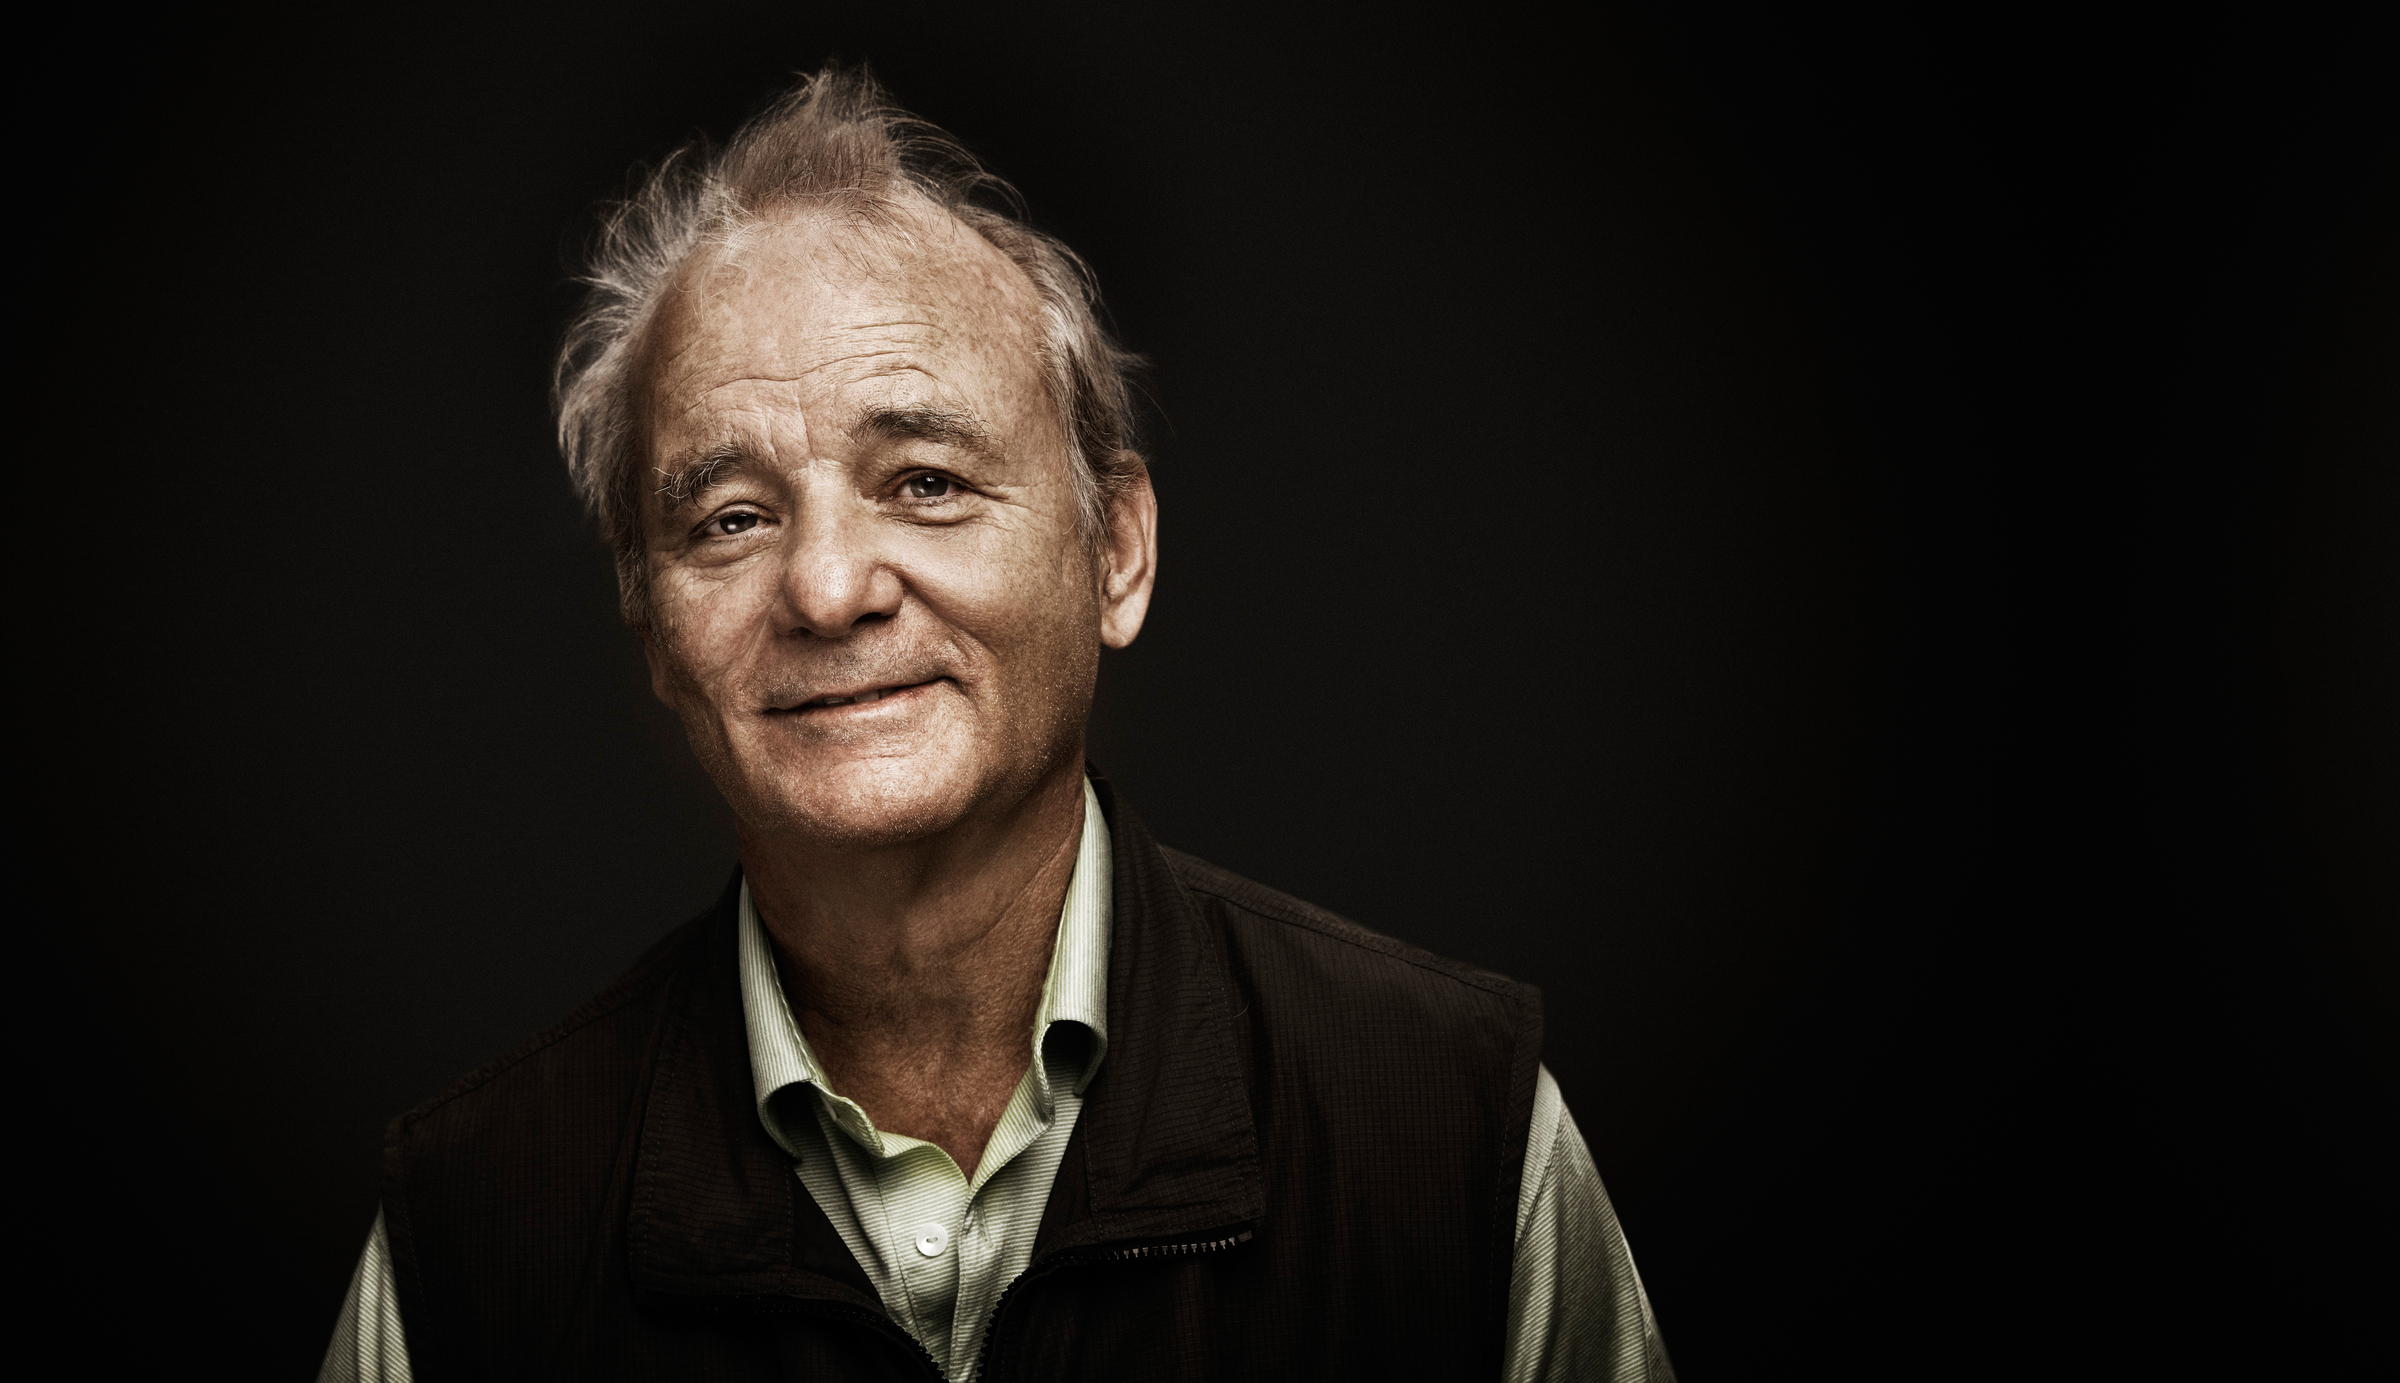 17 May 2012, Cannes, France, France --- American actor Bill Murray attends the 65th Cannes Film Festival. --- Image by © Roc